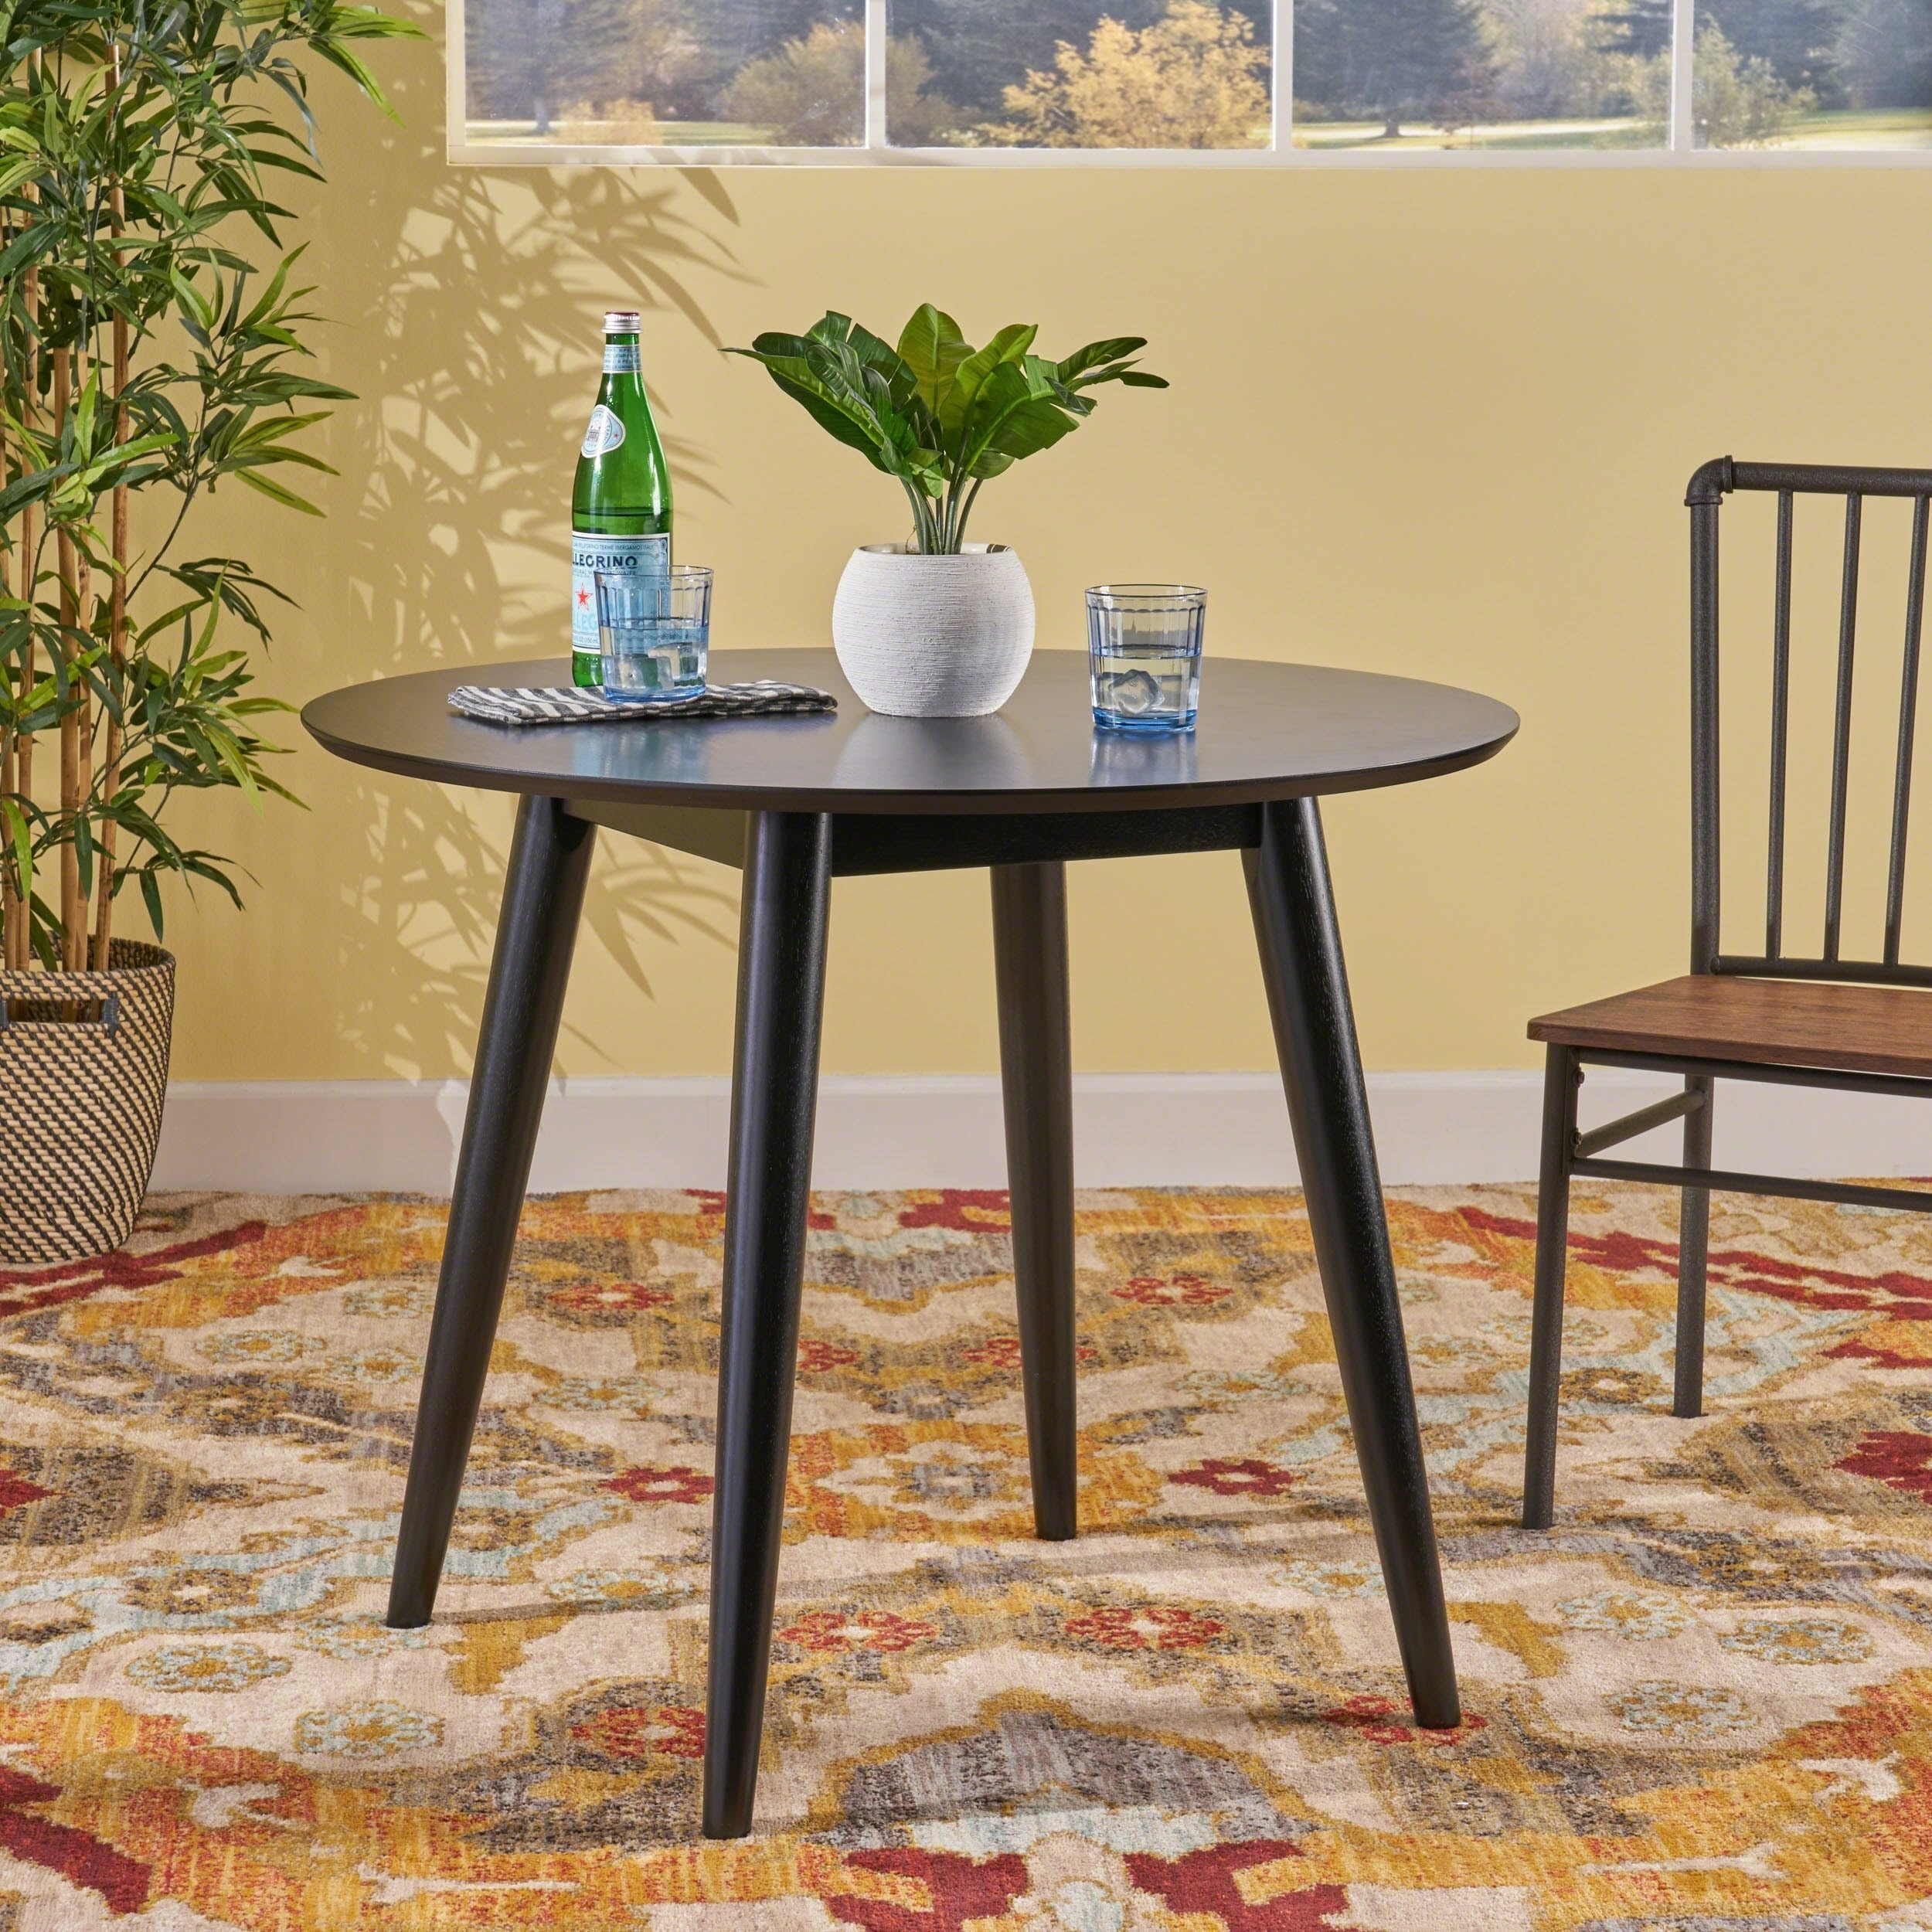 Buy round kitchen dining room tables online at overstock our buy round kitchen dining room tables online at overstock our best dining room bar furniture deals greentooth Images